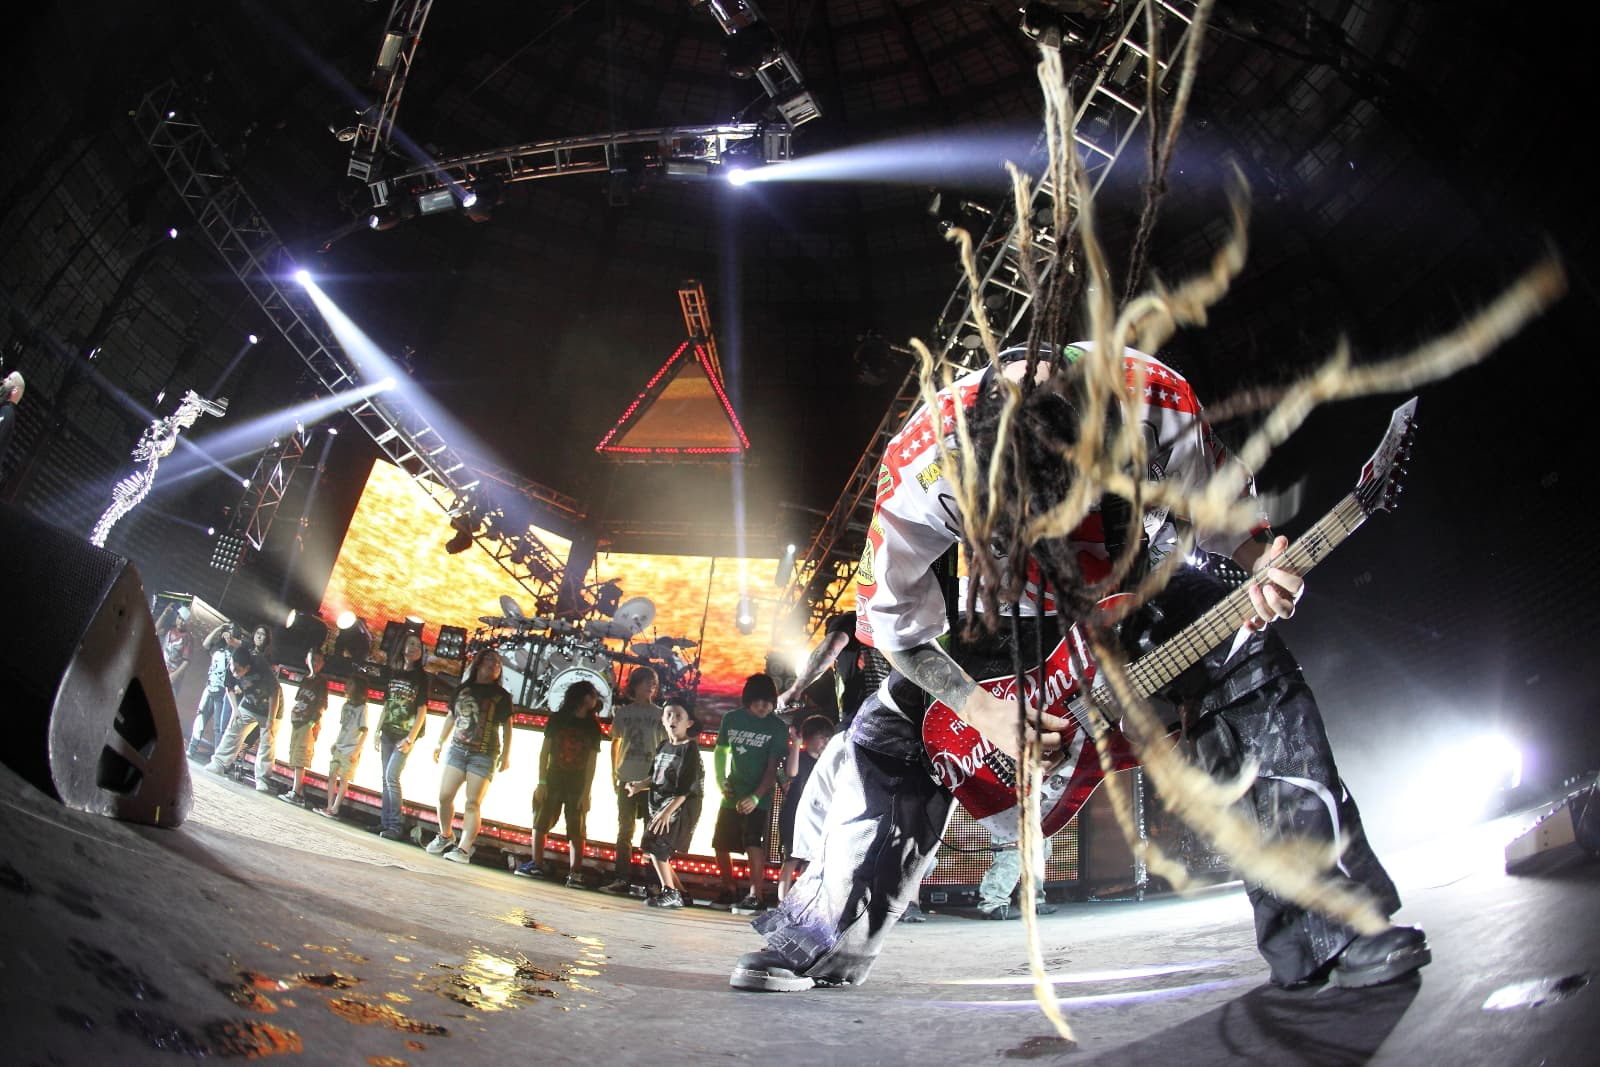 Zoltan Bathory, guitarist of Five Finger Death Punch in action at a live show. Photo by Harry Reese